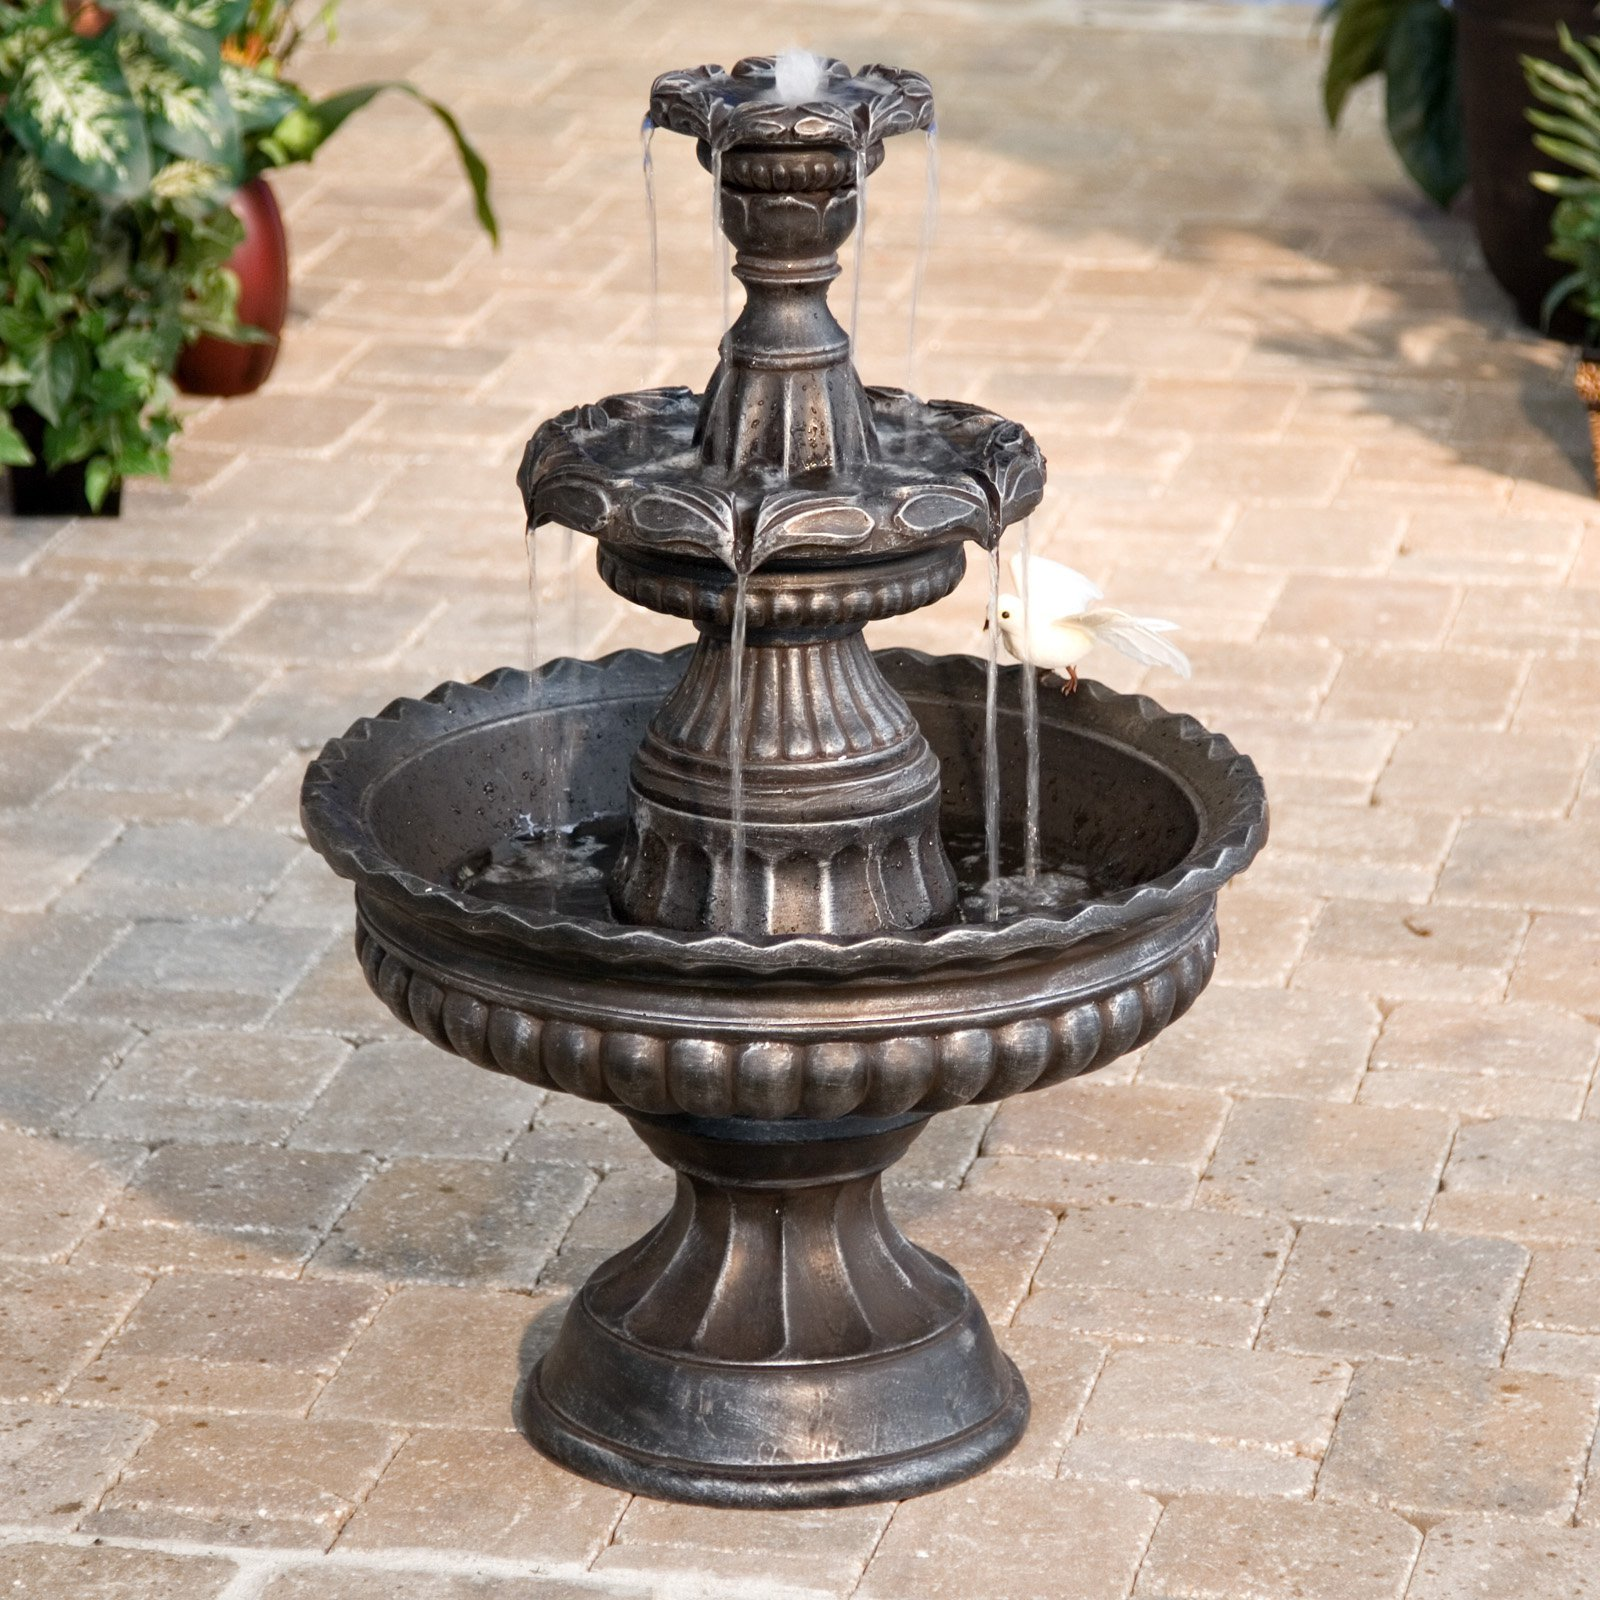 Garden Classic 3-Tier Outdoor Fountain by LB International Inc